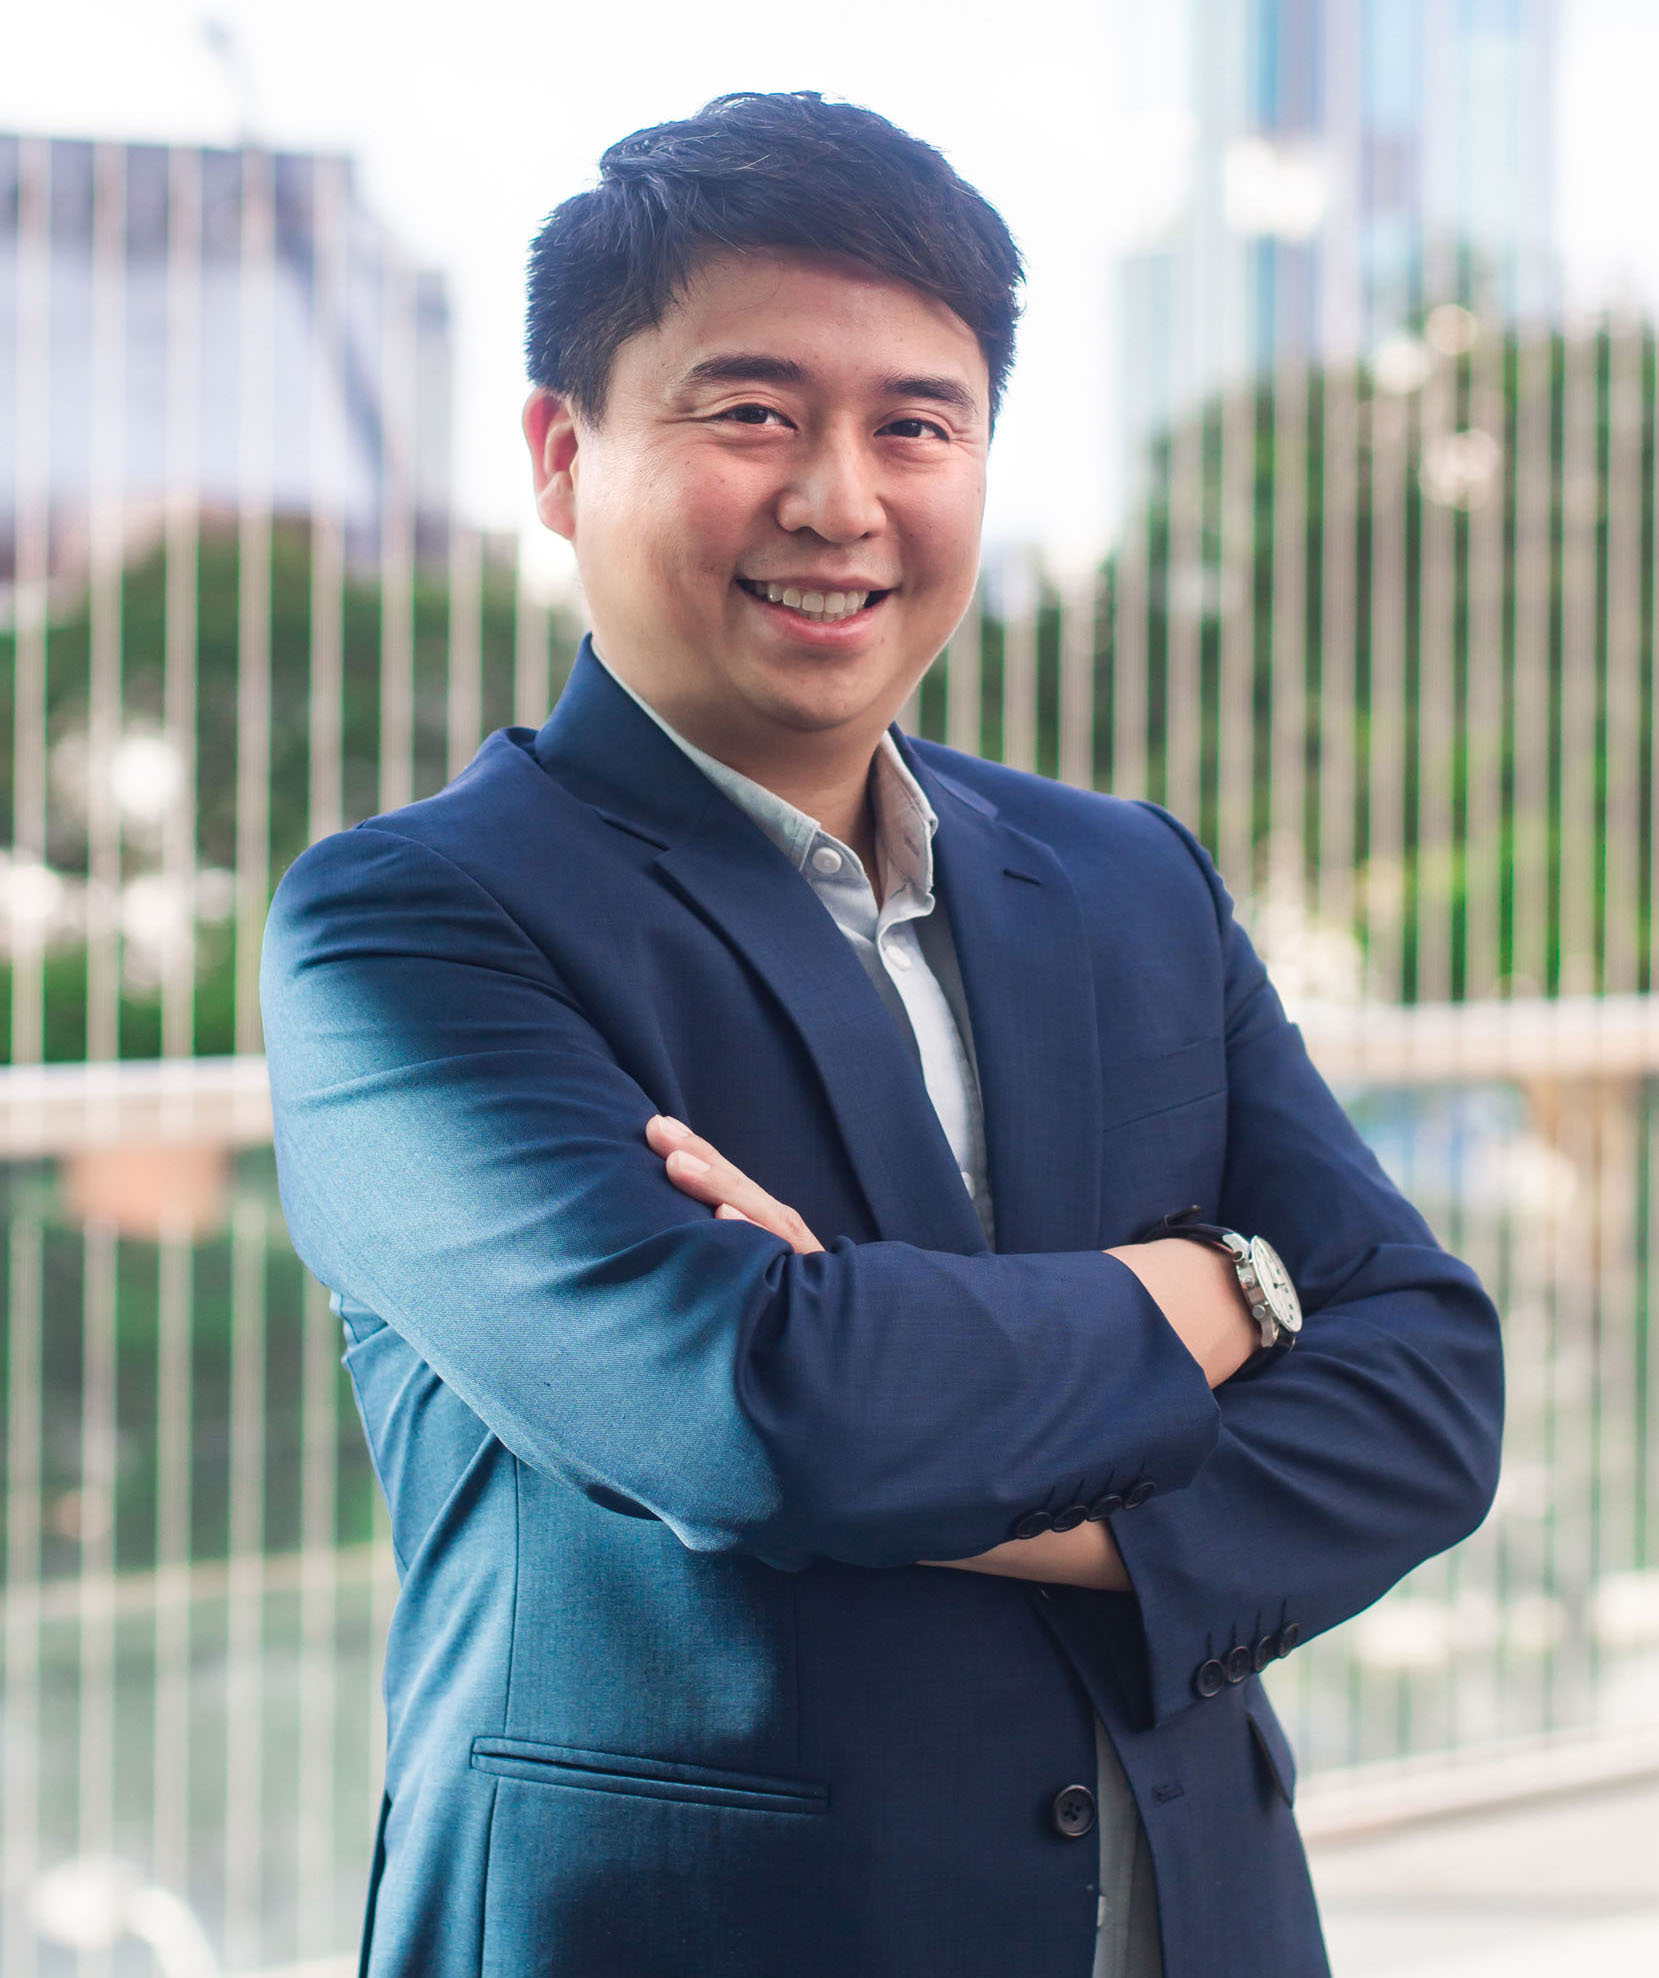 Chris Long - Cryptocurrency Analyst and Founder of CryptoTrader.Sg